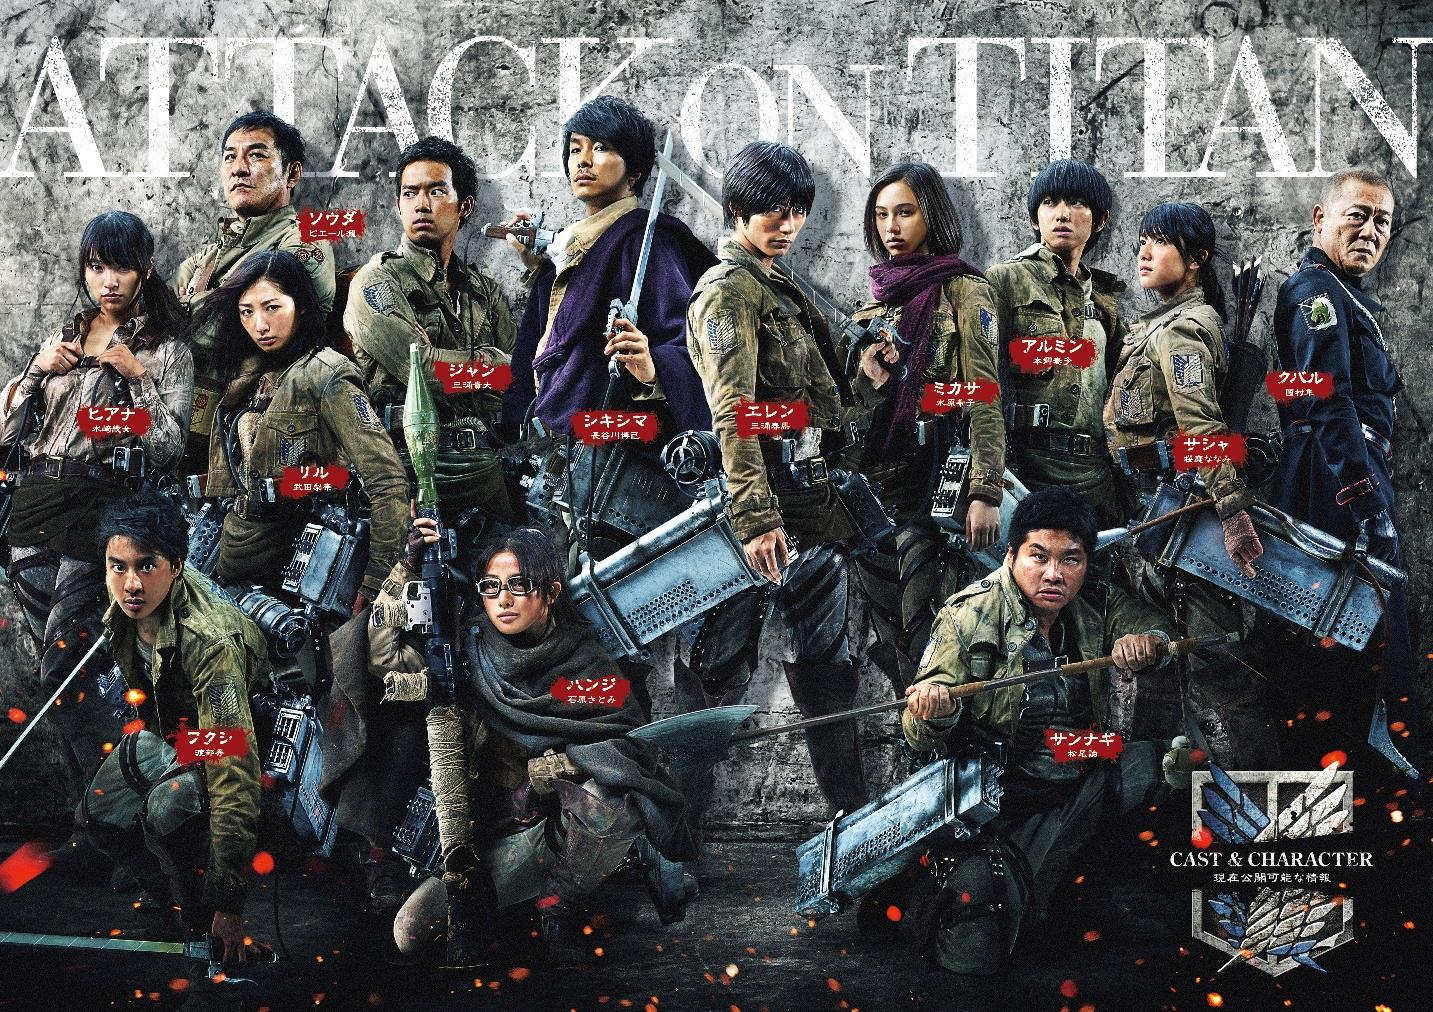 Attacco dei Giganti 1 - Shingeki no kyojin - Attack on Titan live action - cast characters